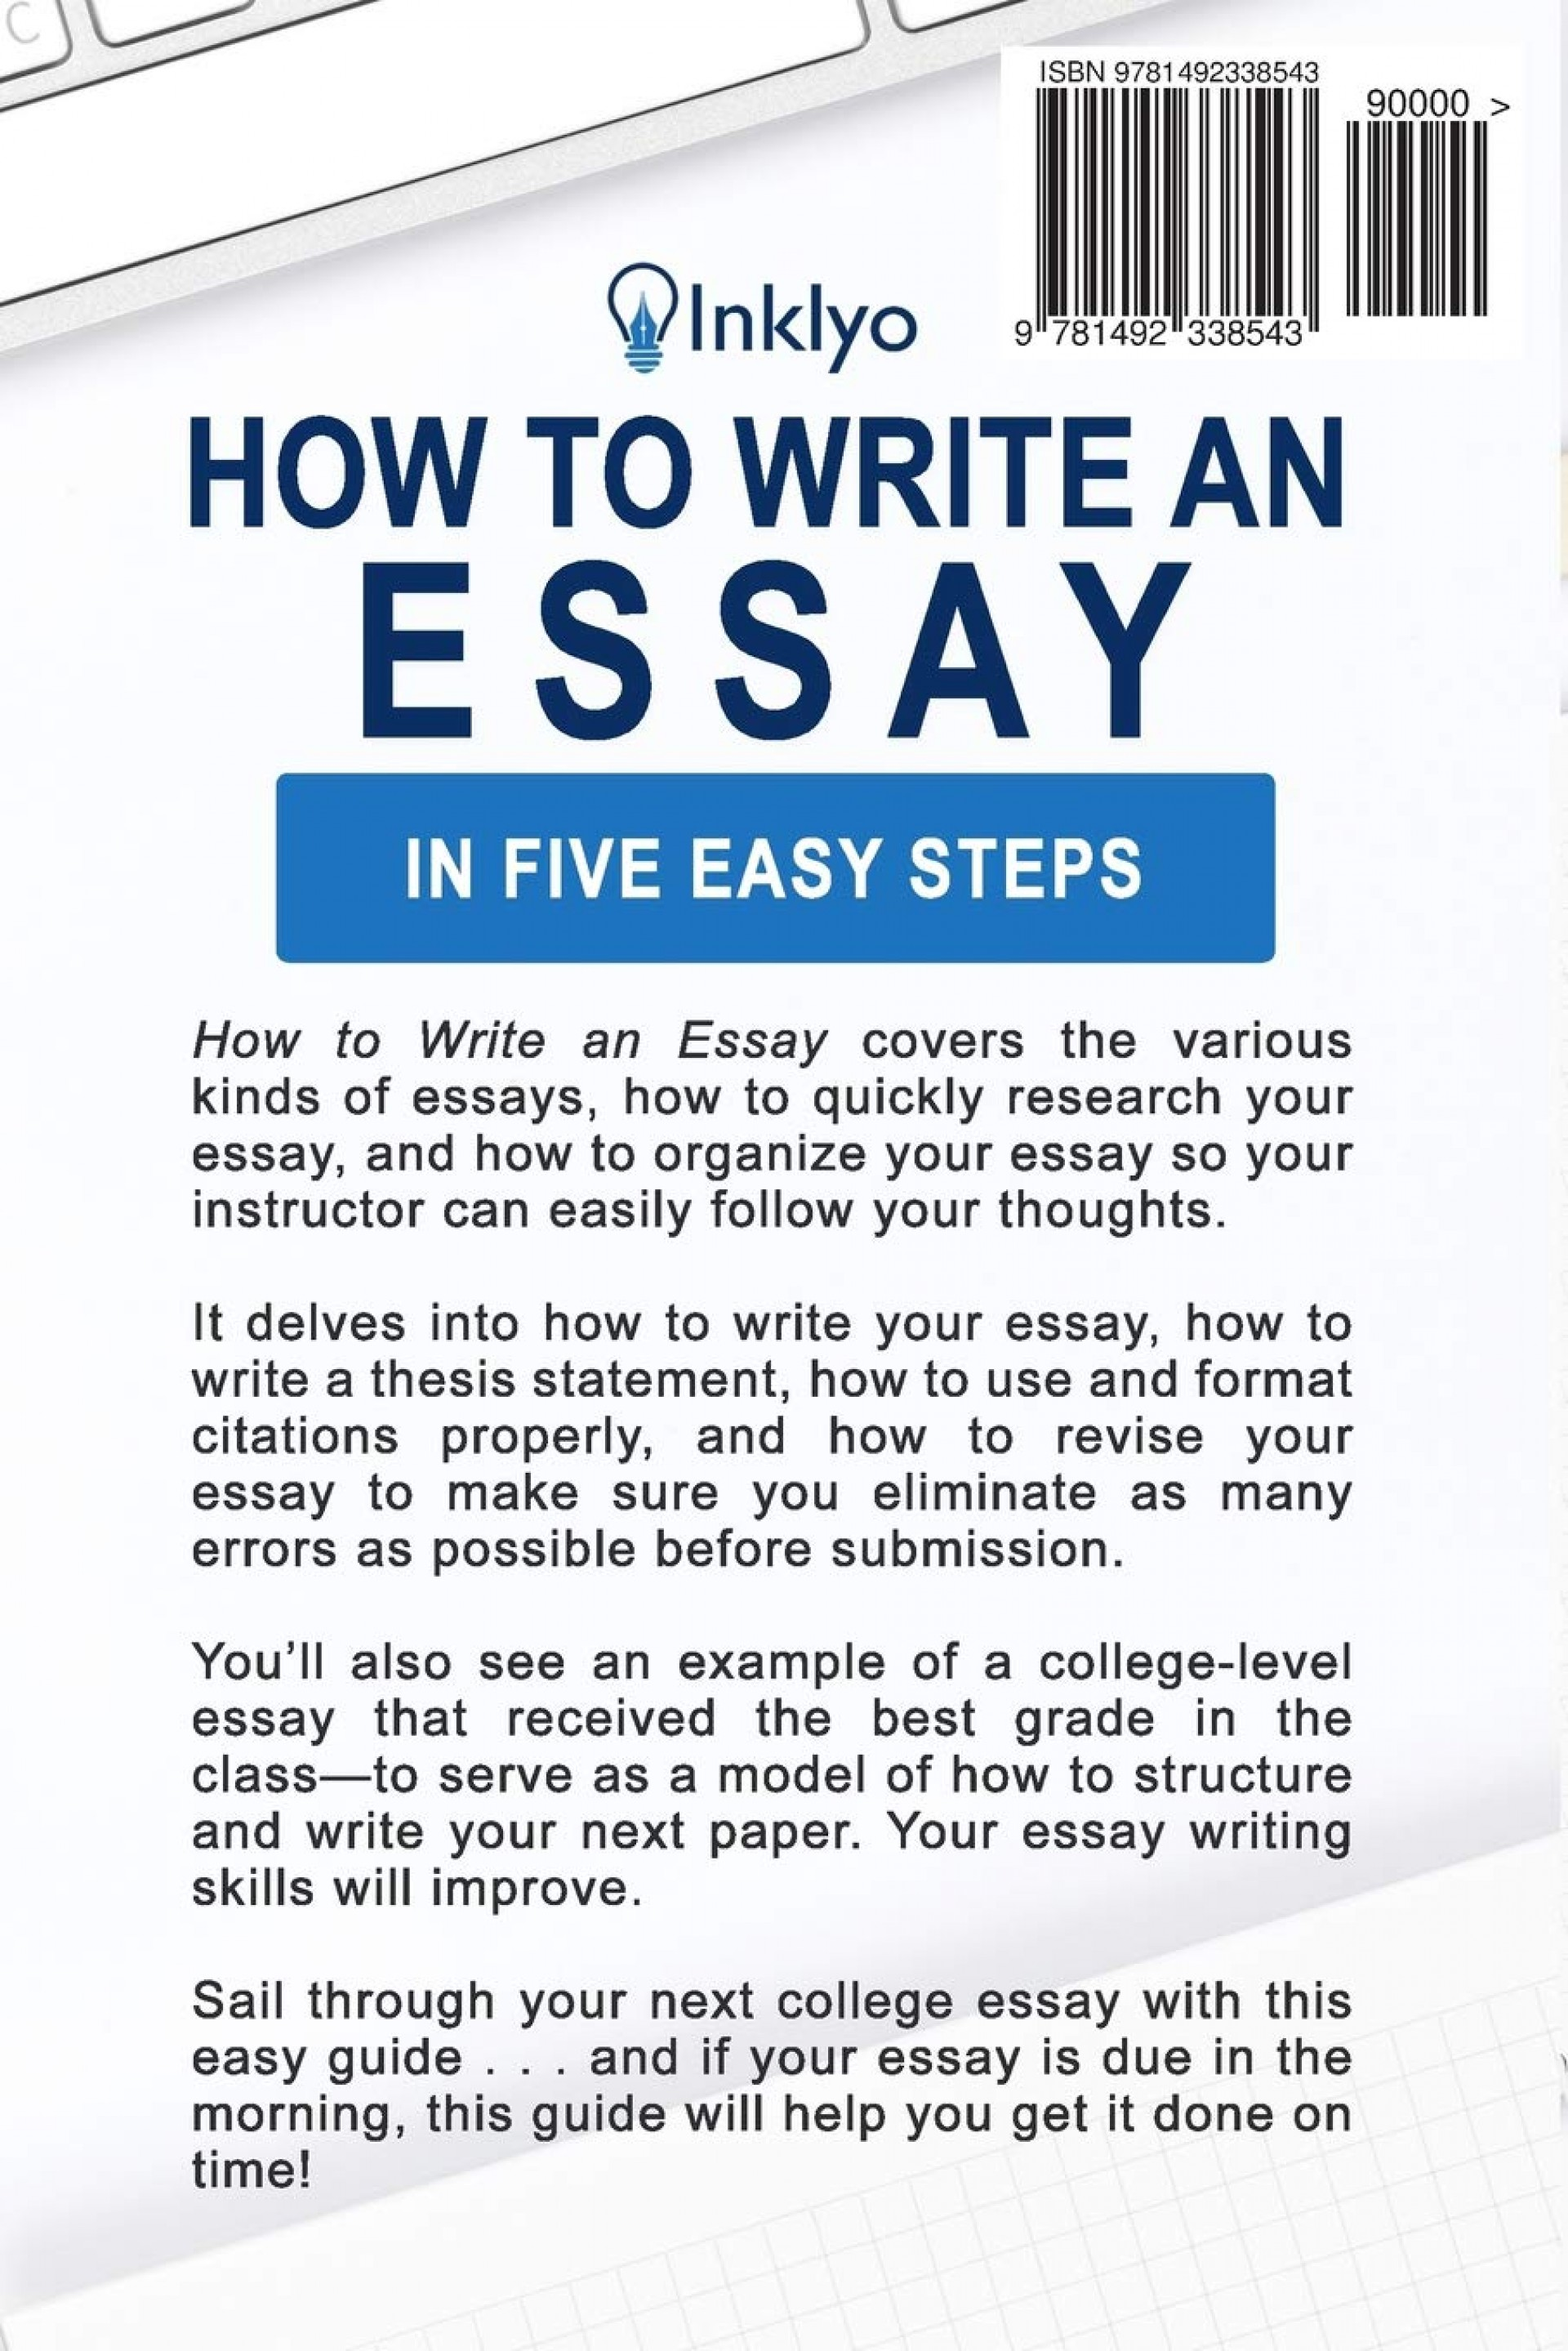 001 Essay Example Writing Breathtaking App Topics For High School Students Apk 1920